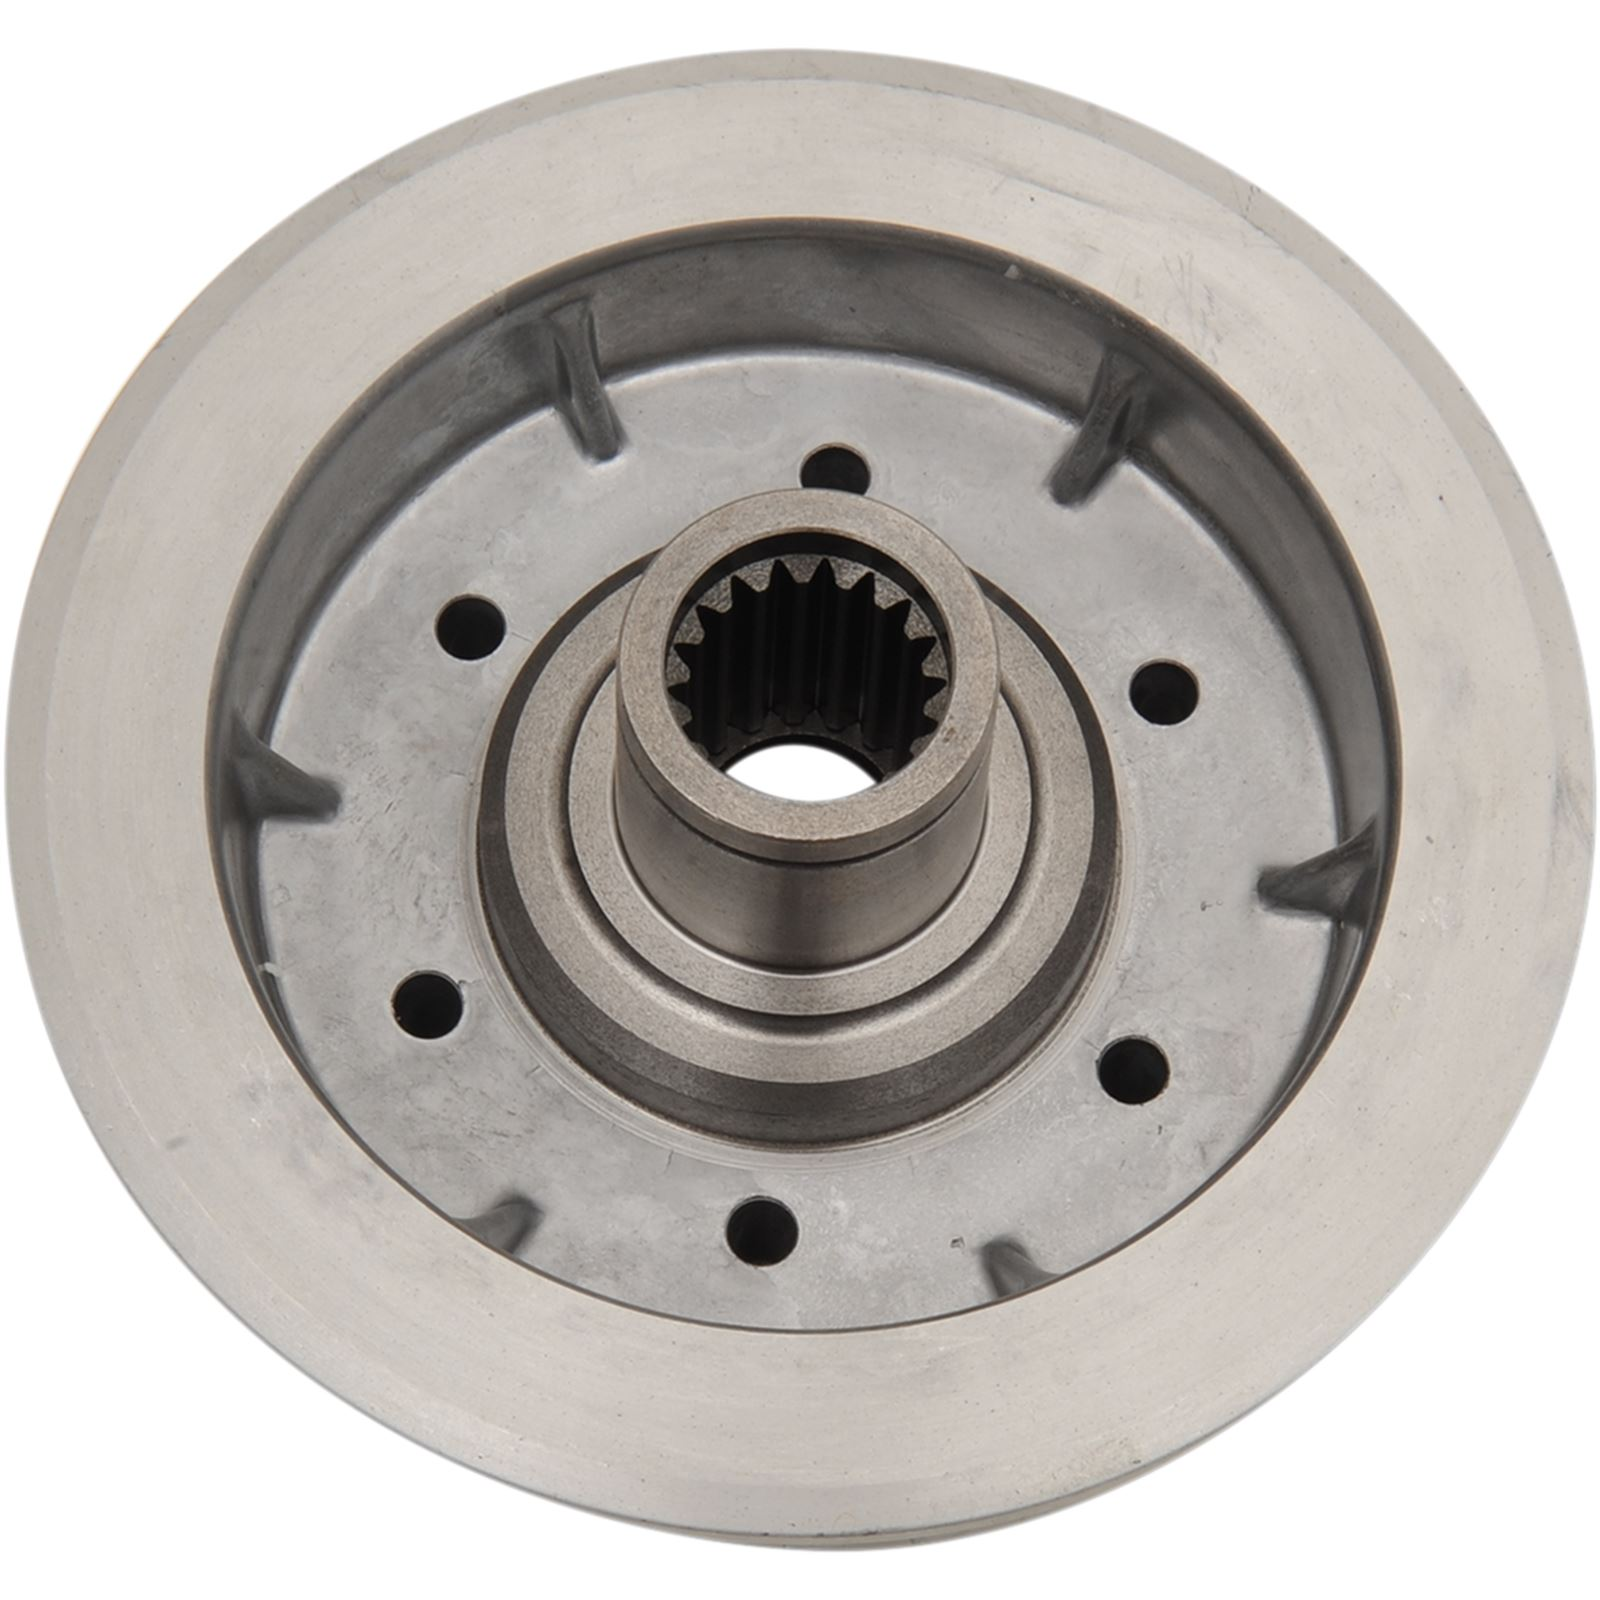 Eastern Motorcycle Parts Inner Clutch Hub - 37554-06A